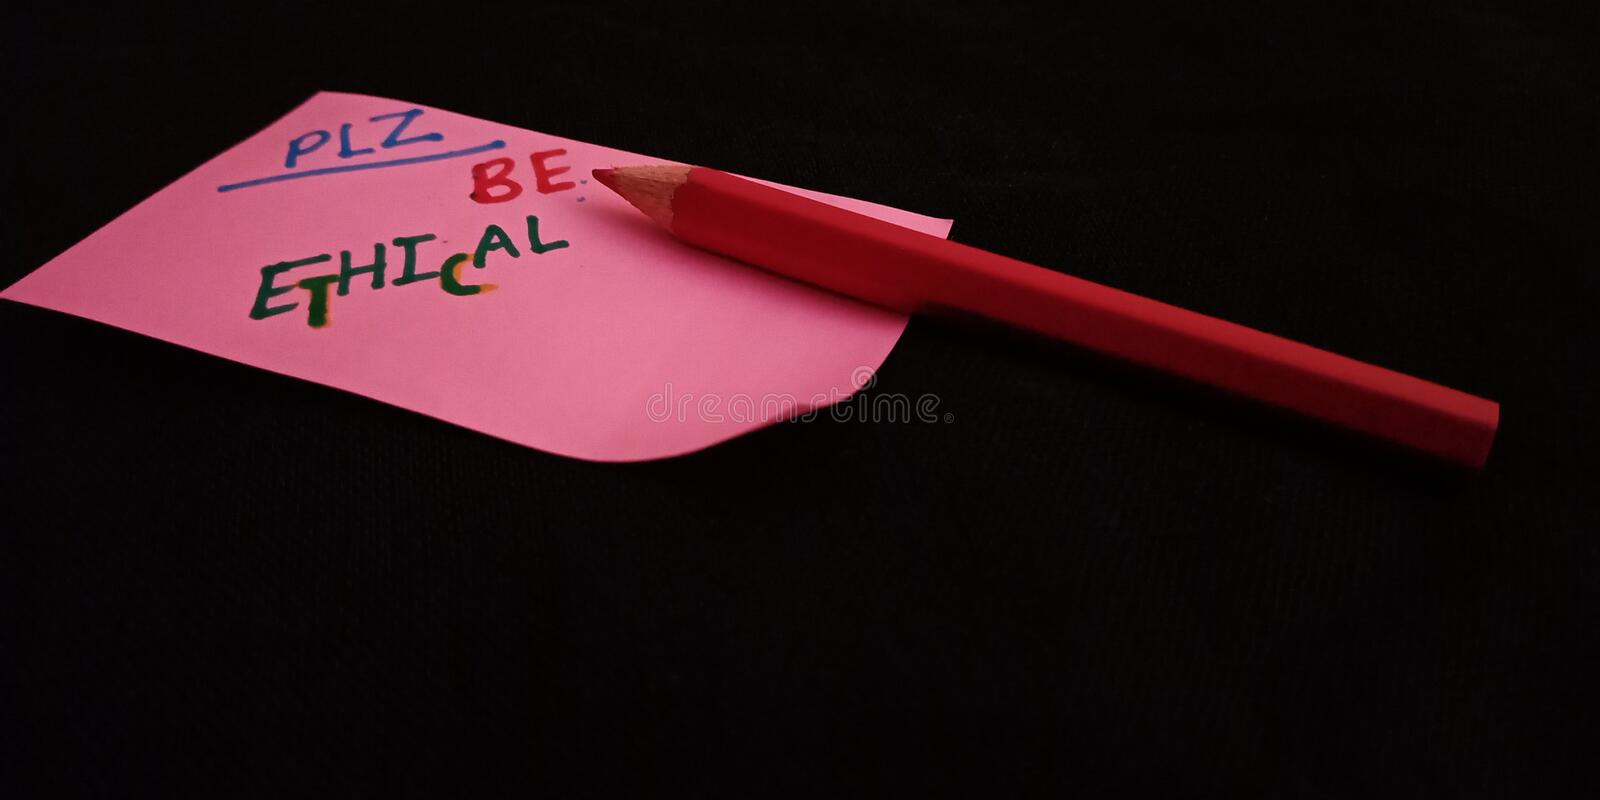 please be ethical concept displaying with red colour pencil on black background stock photo